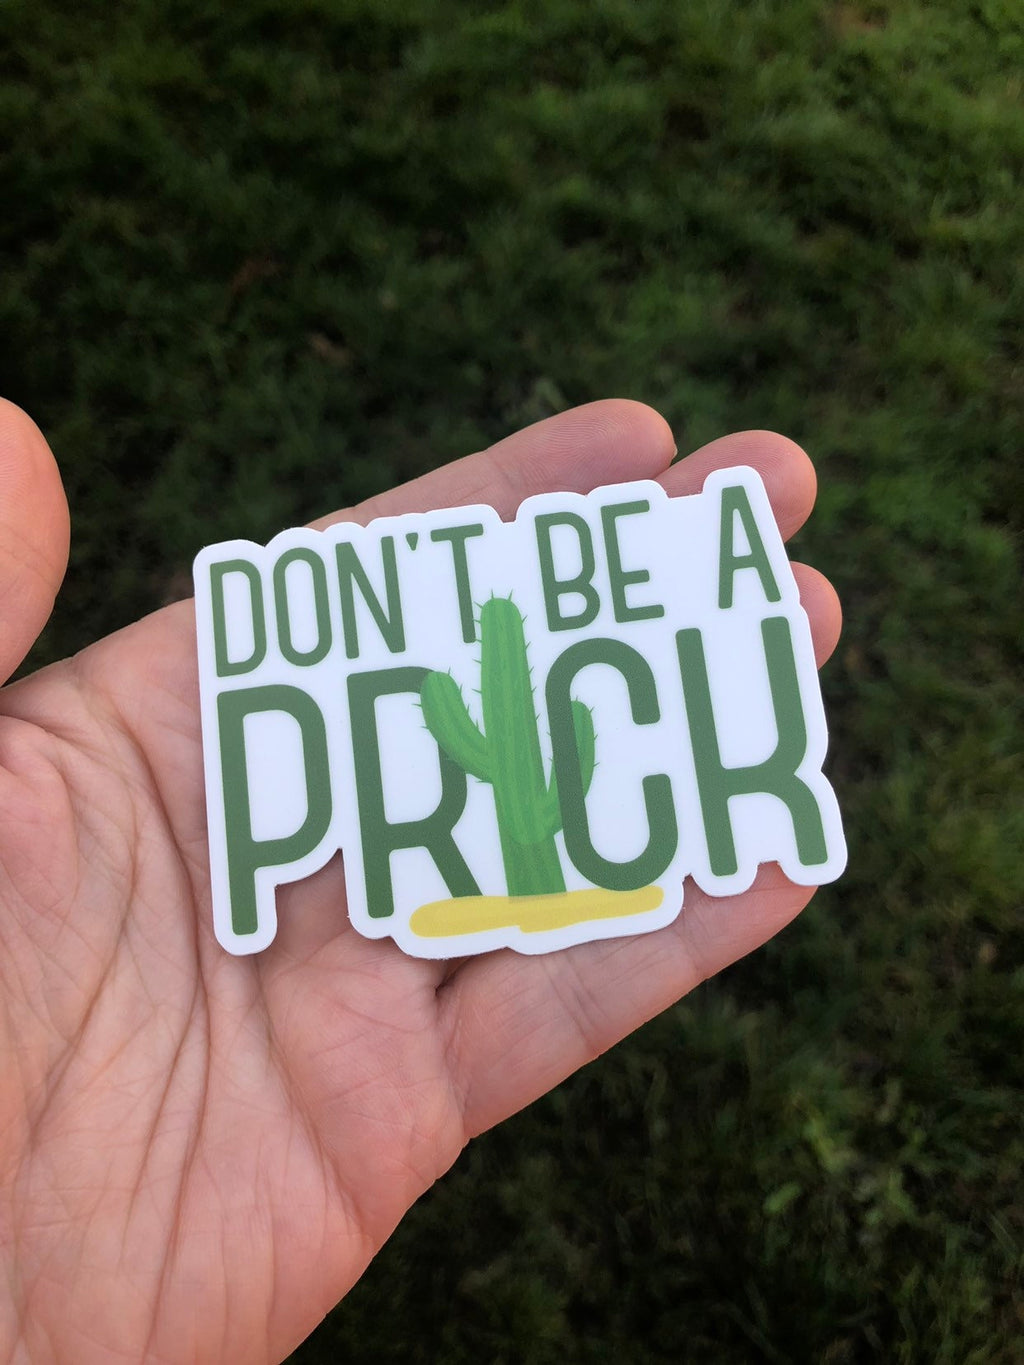 Don't be a prick cactus sticker